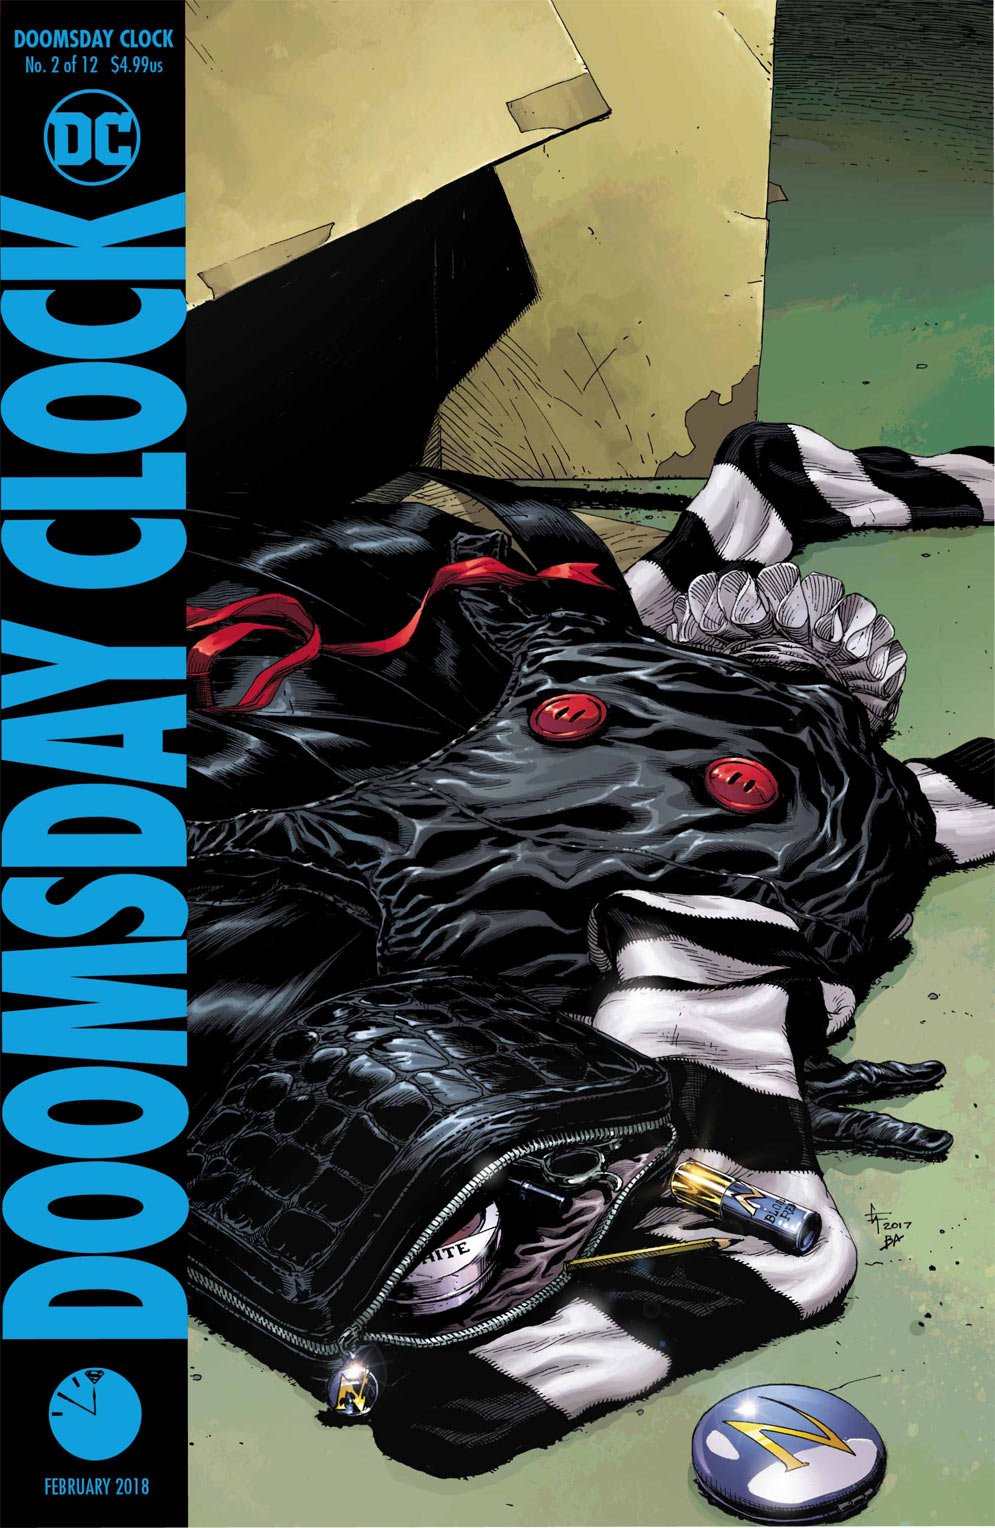 Doomsday Clock Cover #2 - DC Comics News